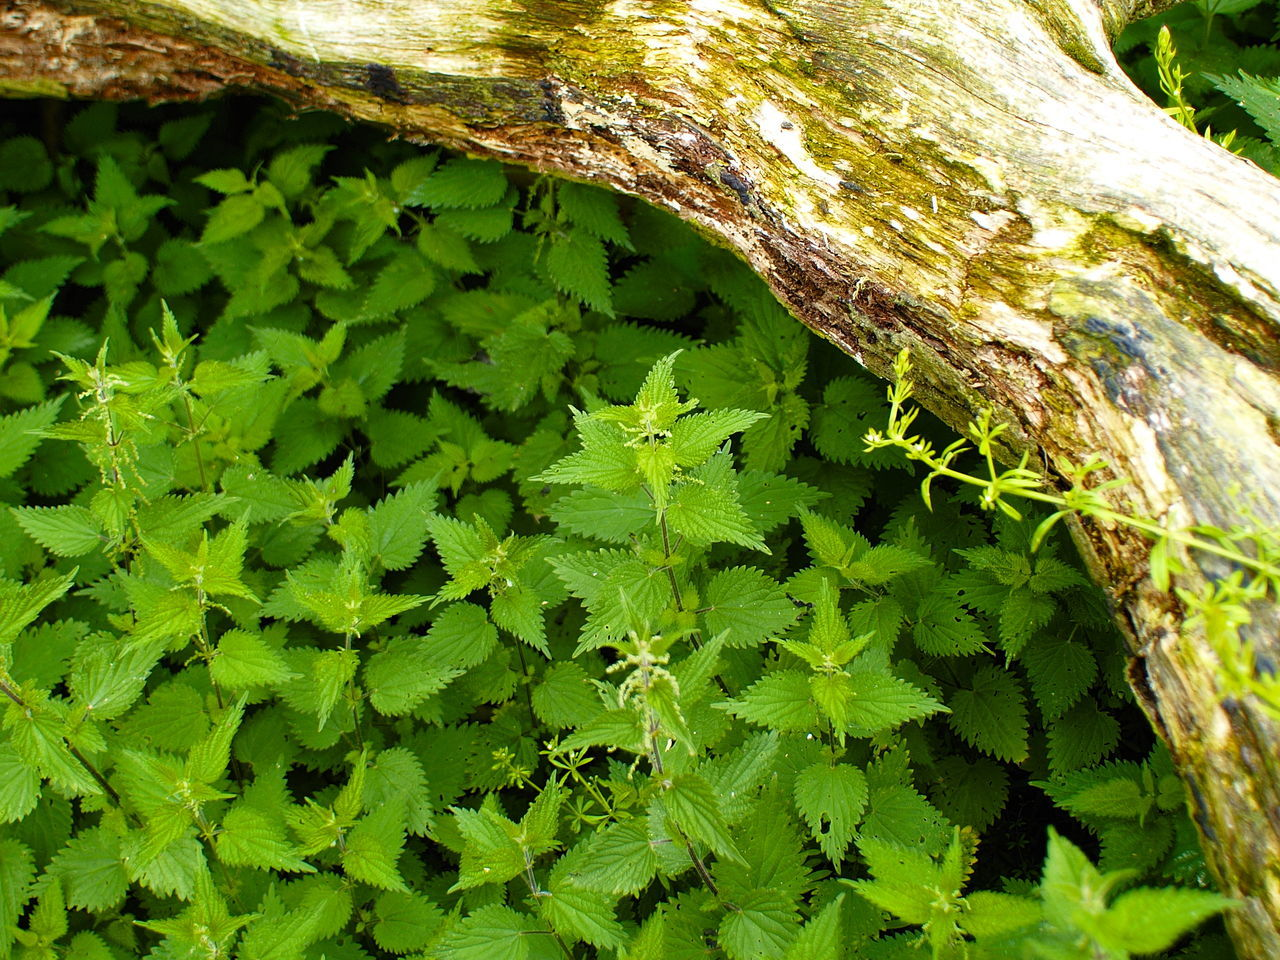 green color, growth, nature, leaf, outdoors, day, close-up, tree trunk, no people, plant, tree